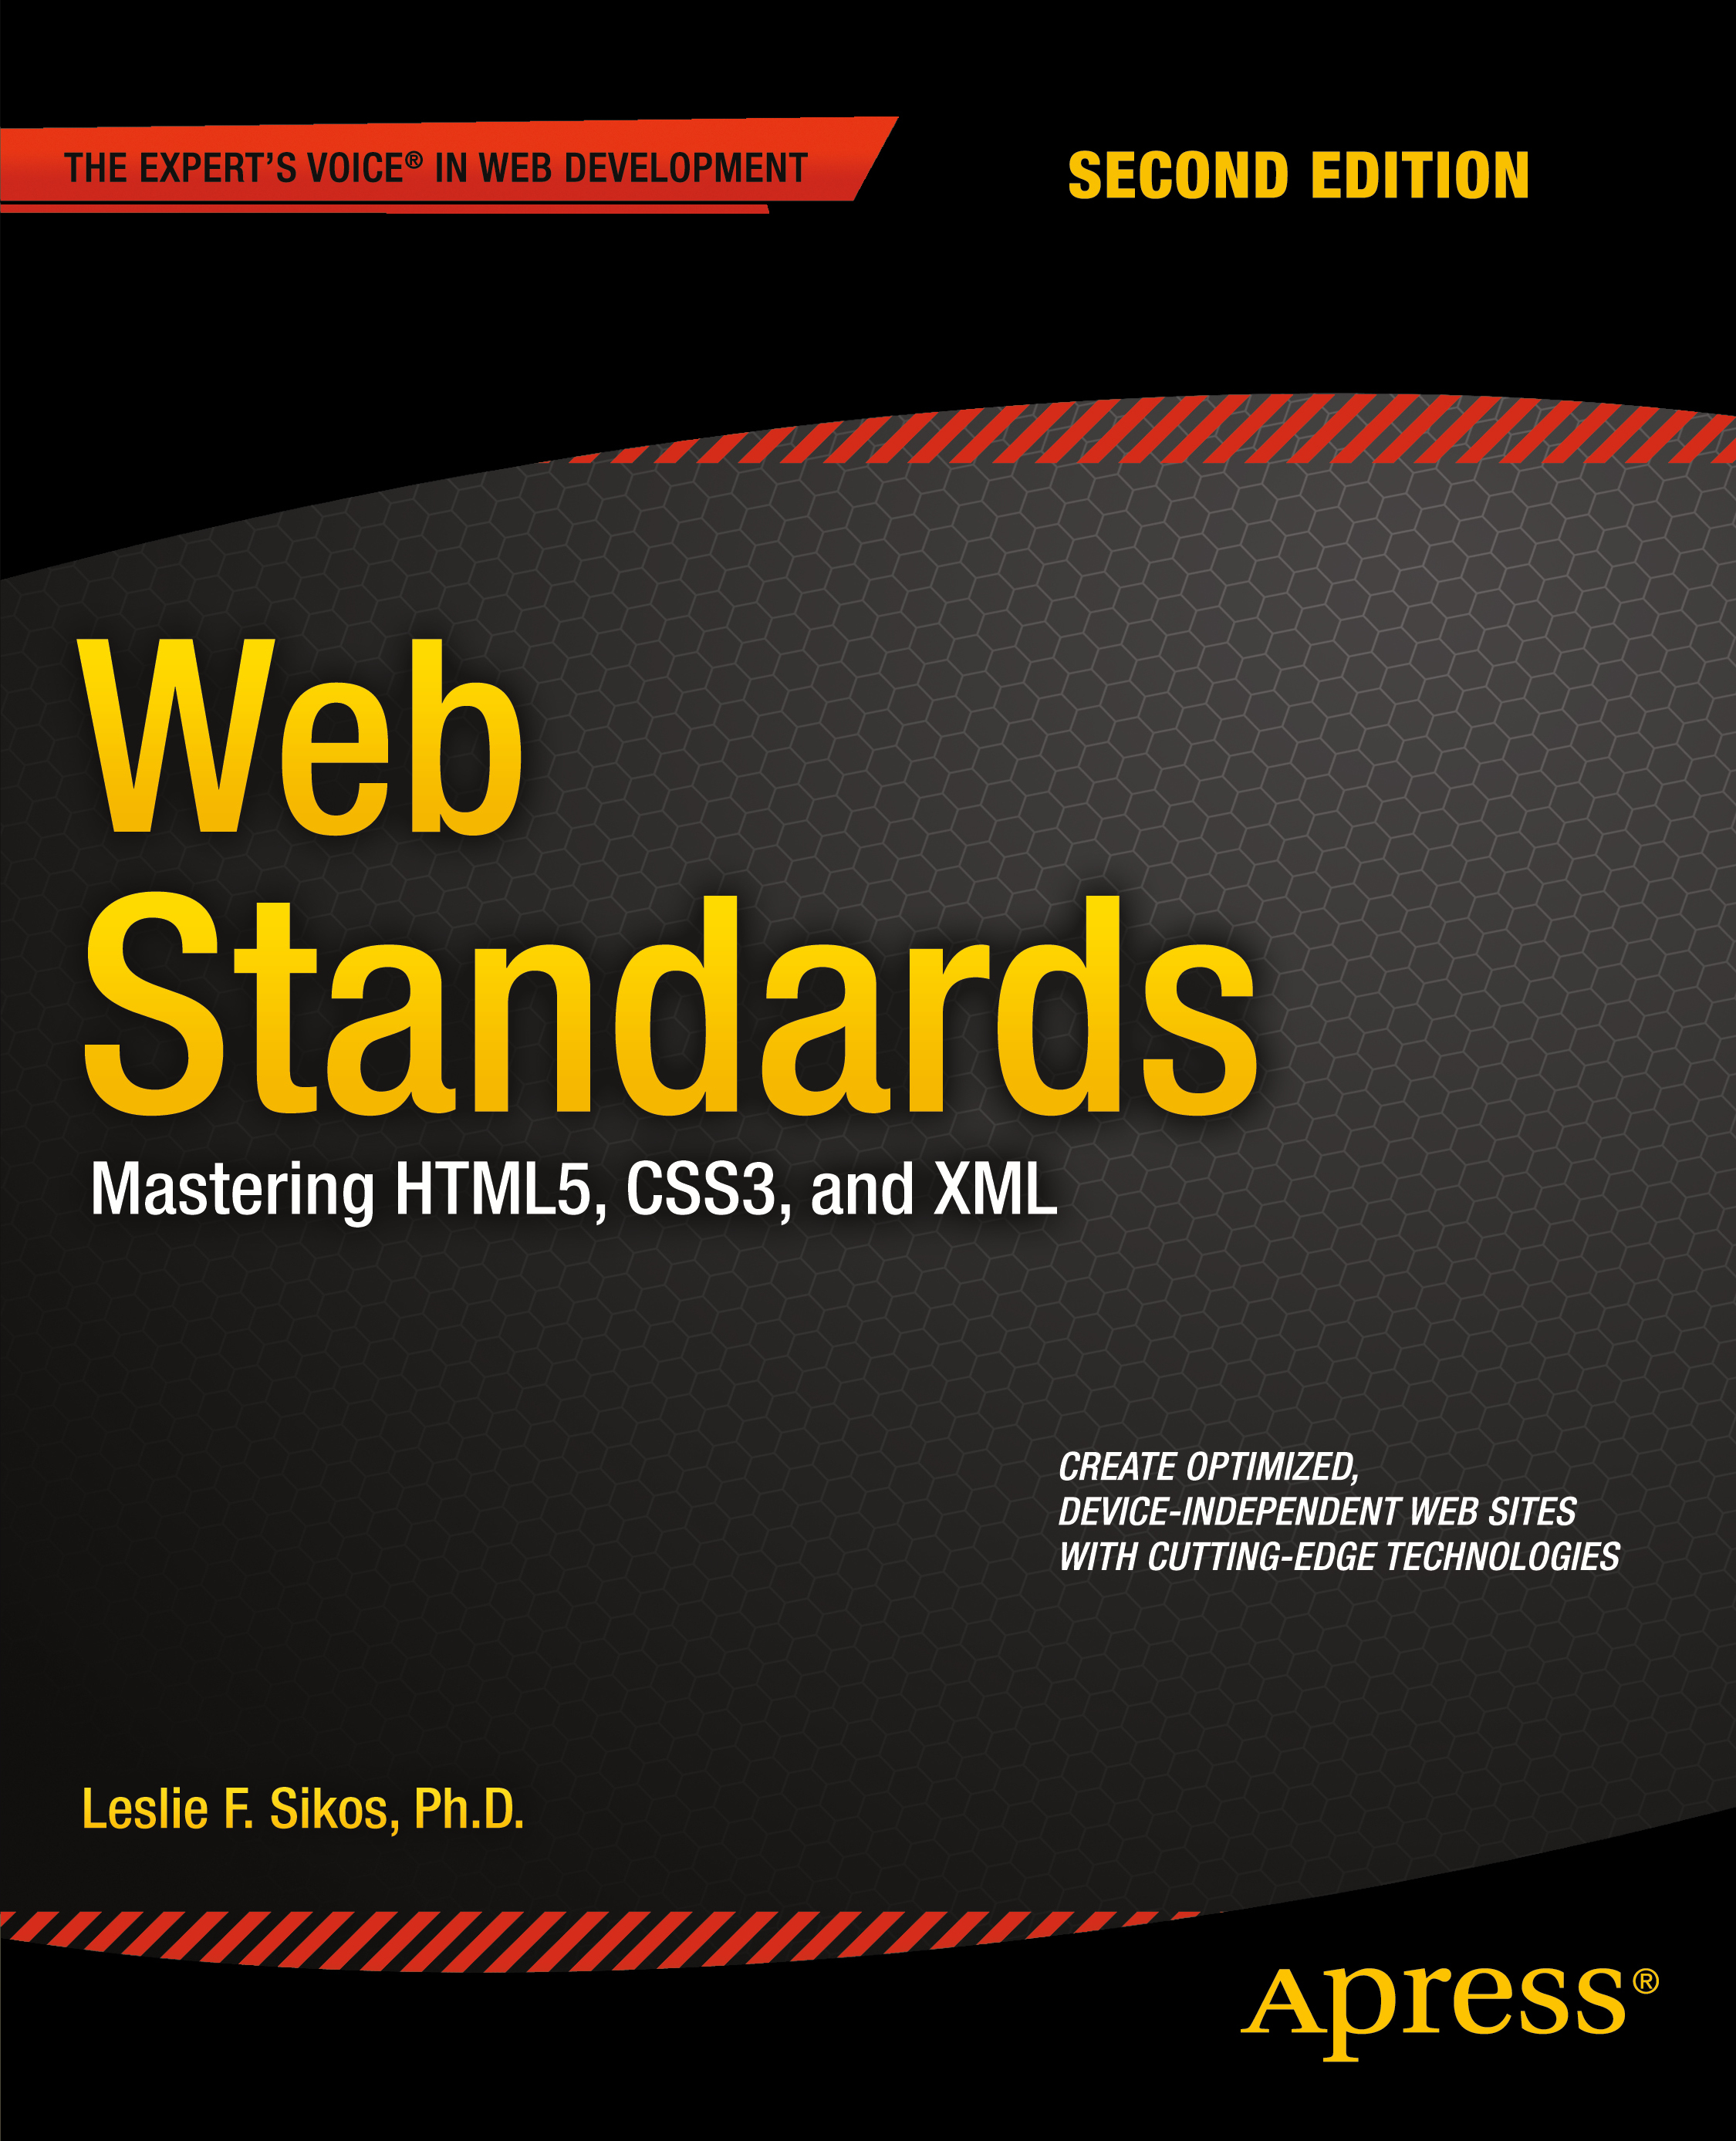 Web Standards Mastering Html5 Css3 And Xml Second Edition